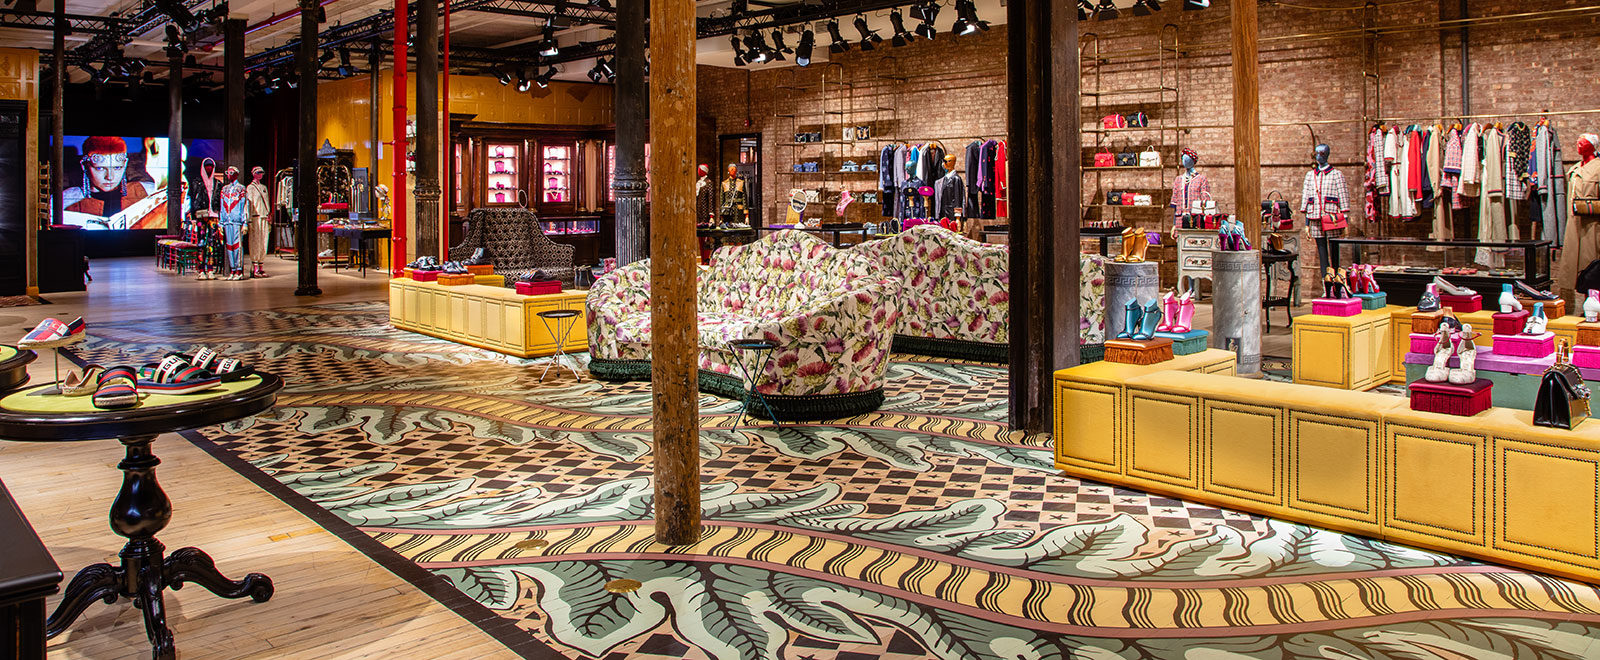 GUCCI'S NEW DESTINATION TAPS INTO SOHO'S CREATIVE HERITAGE